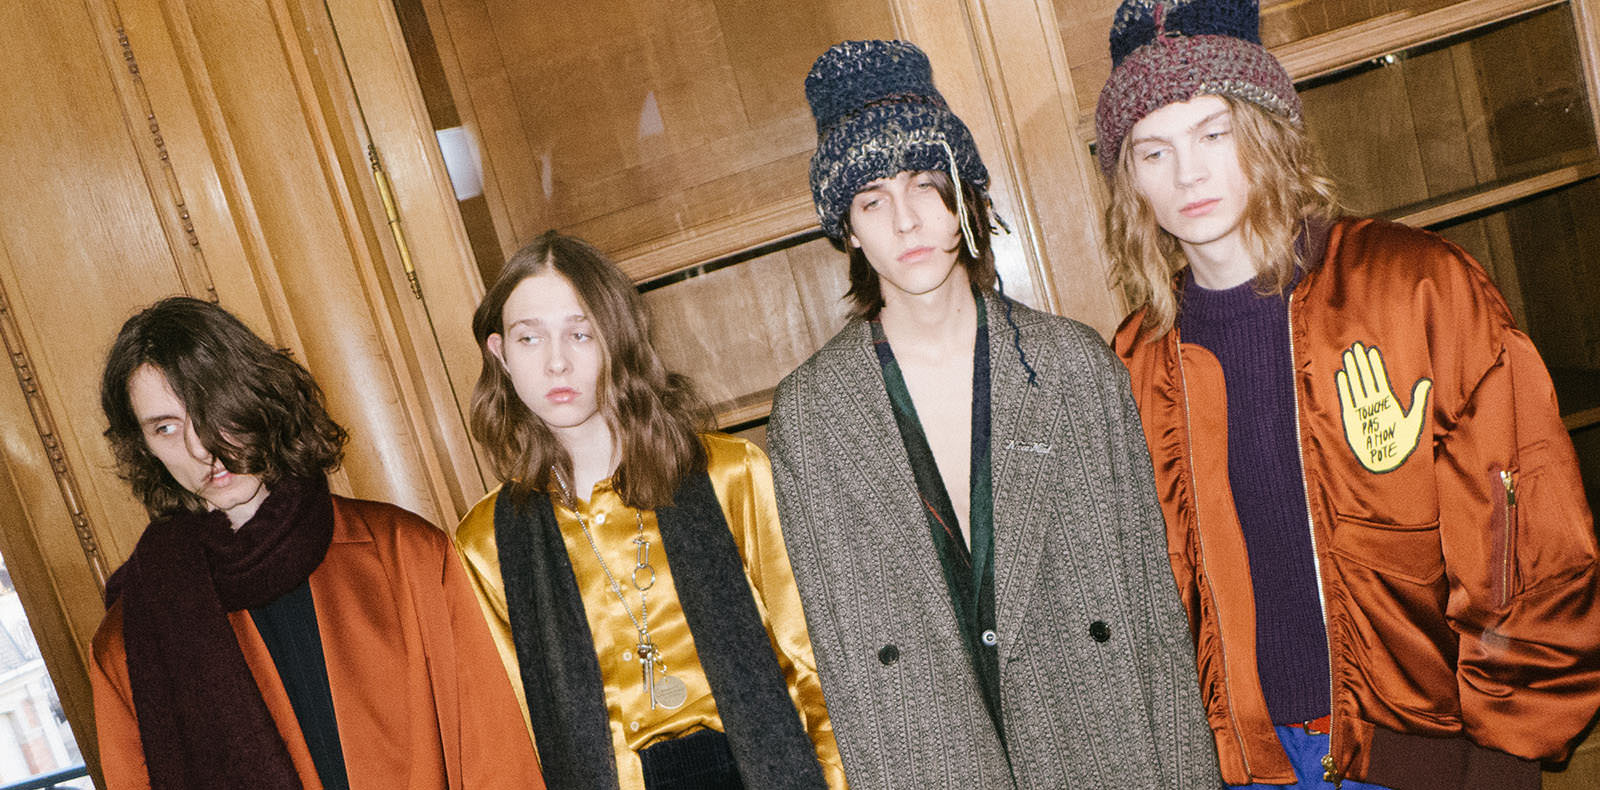 Backstage: Études fall-winter 2017 show seen by Yulya Shadrinsky